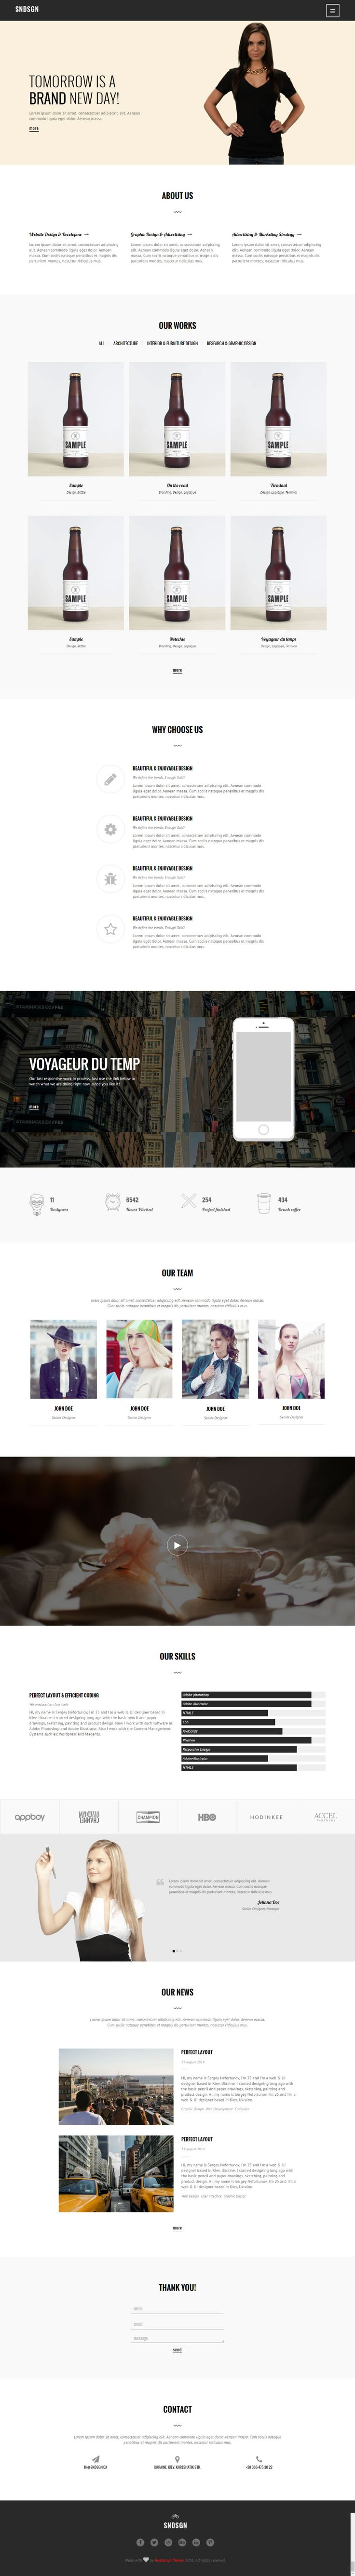 We have created Free Html Template Website. You can download the HTML for your portfolio template website !       #Free #html #website #template #portfolio #responsive #css #css3 #html5 #webtemplate